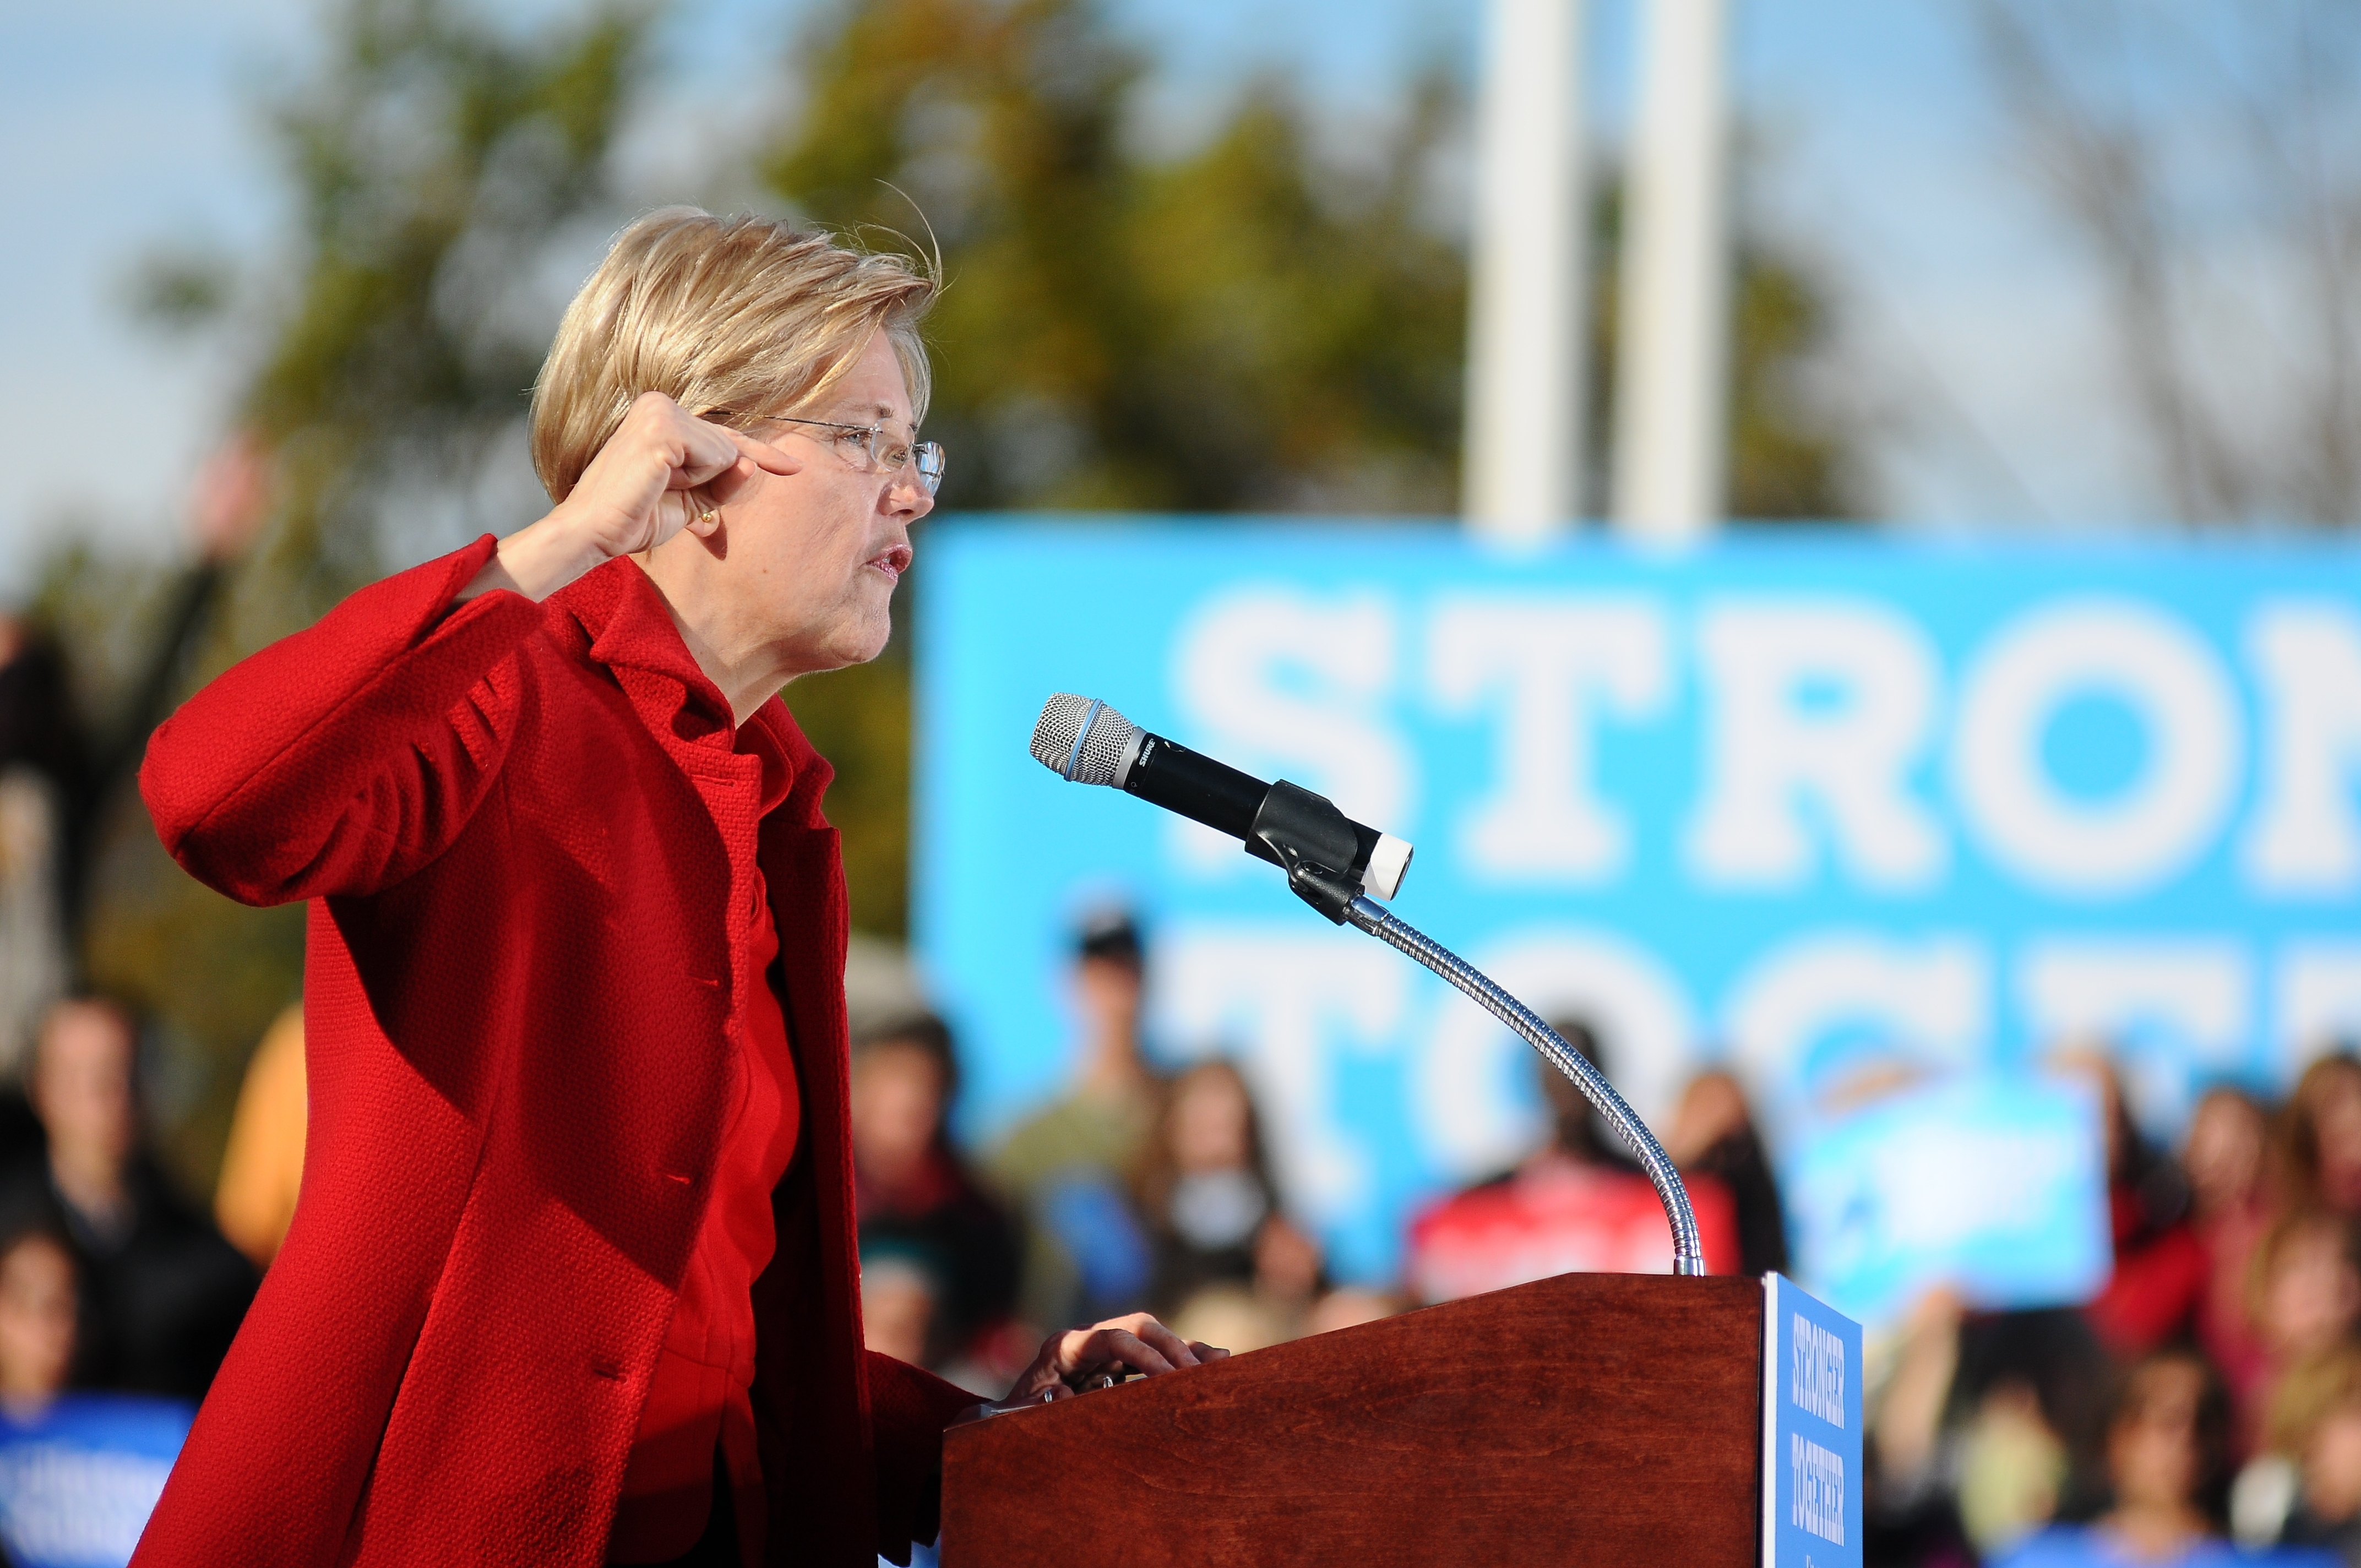 Sen. Warren campaigns for then-presidential candidate Hillary Clinton in 2016. Andrew Cline / Shutterstock.com.